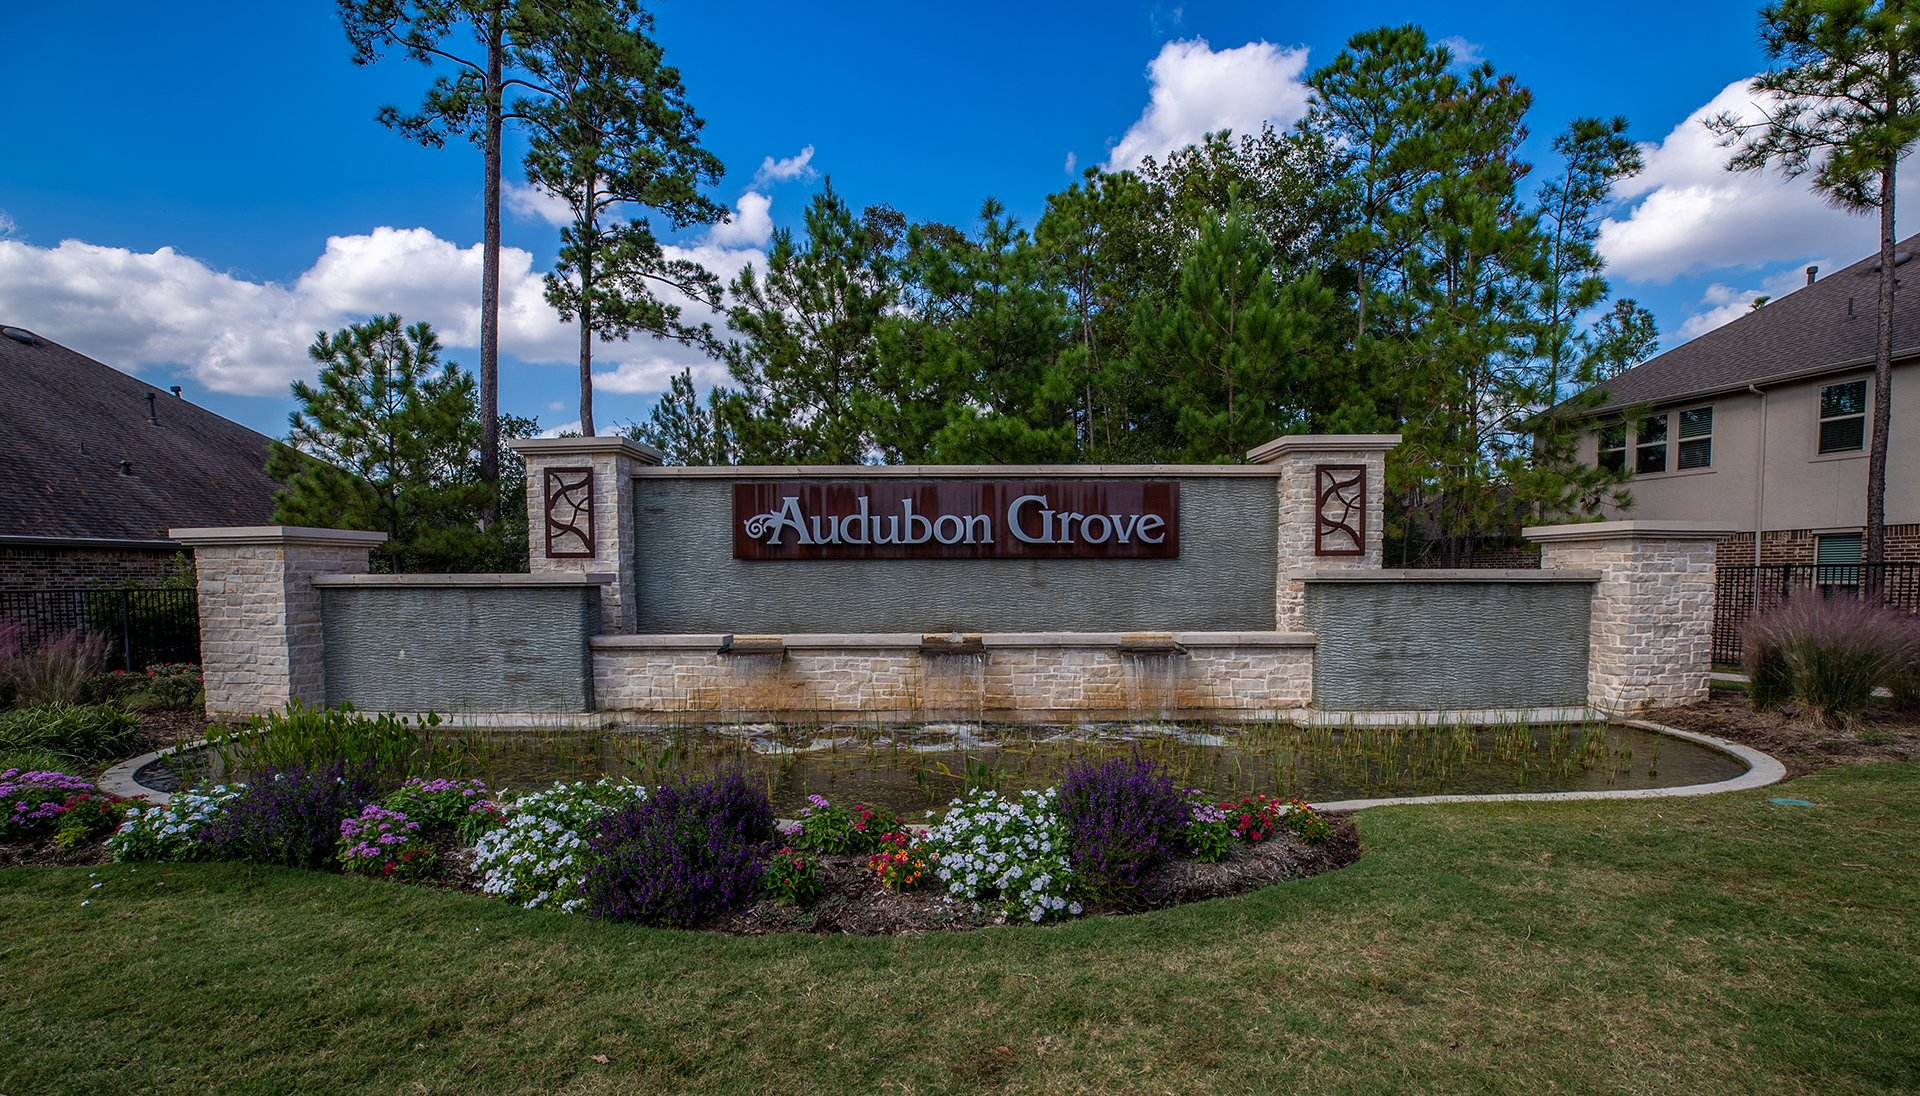 Audubon Grove - Costello Engineering Project for residential+development, drainage, surveying, construction+management+services,